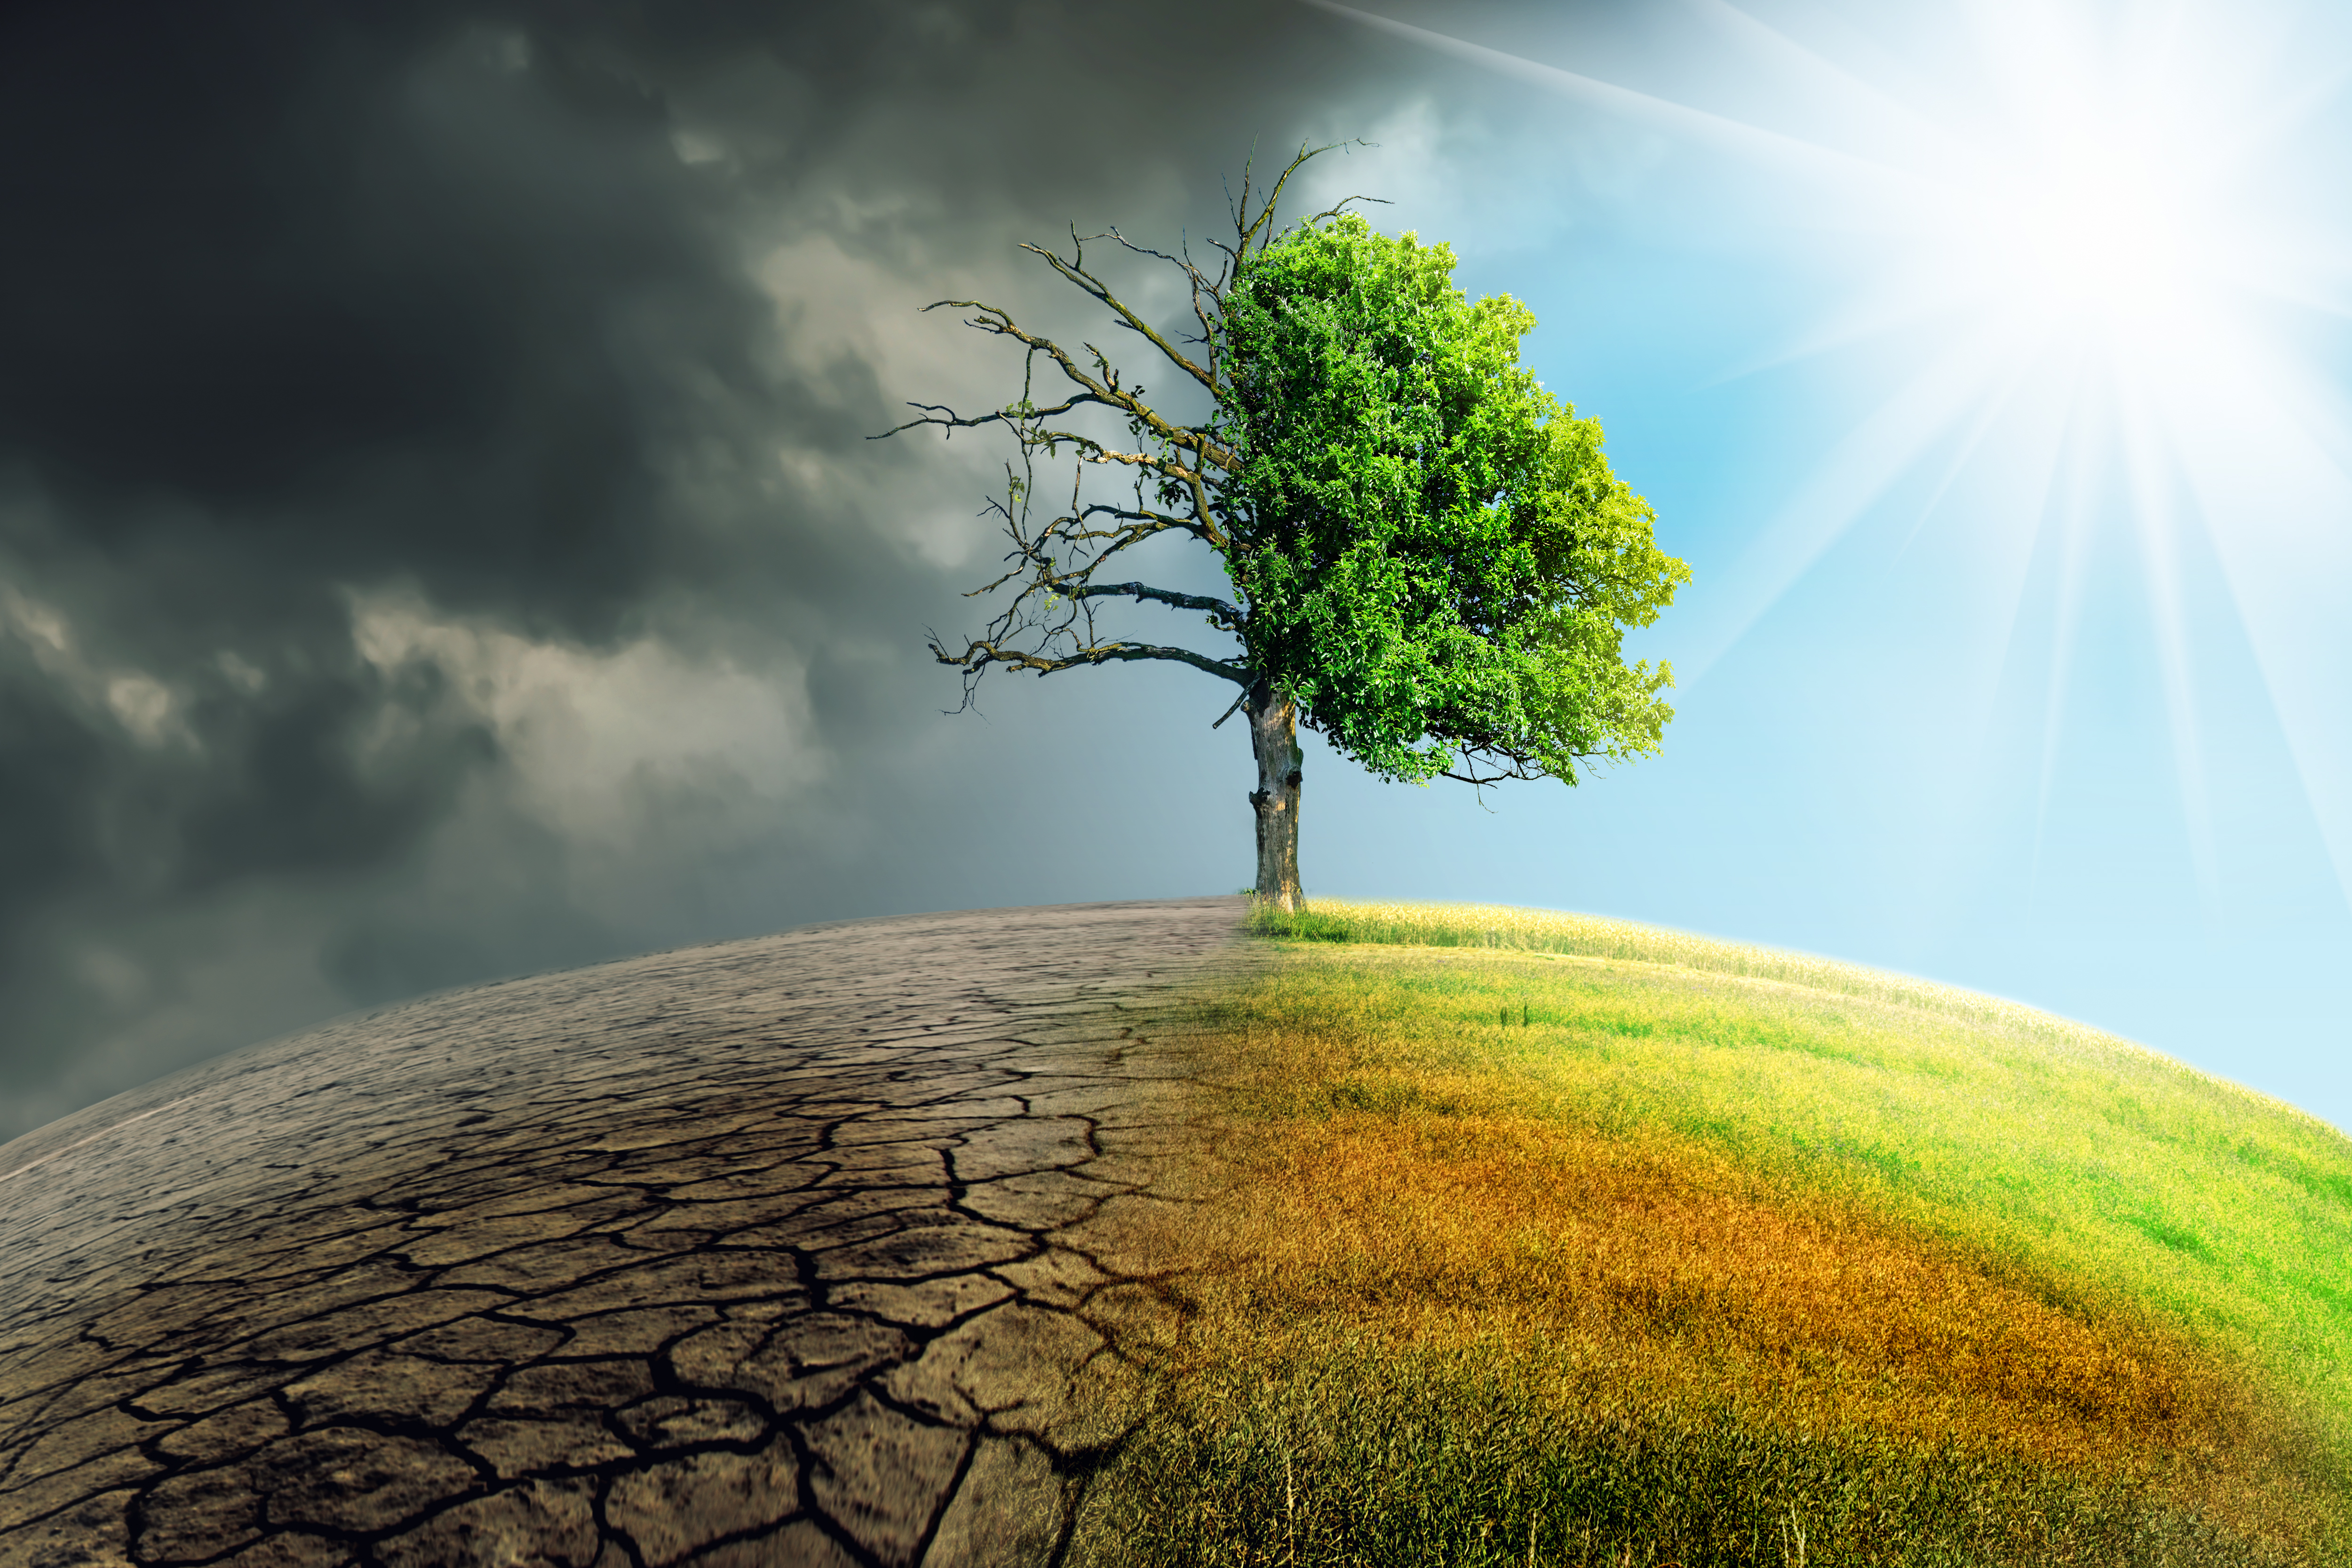 Powerful climate modelling provides a glimpse into a bleak future